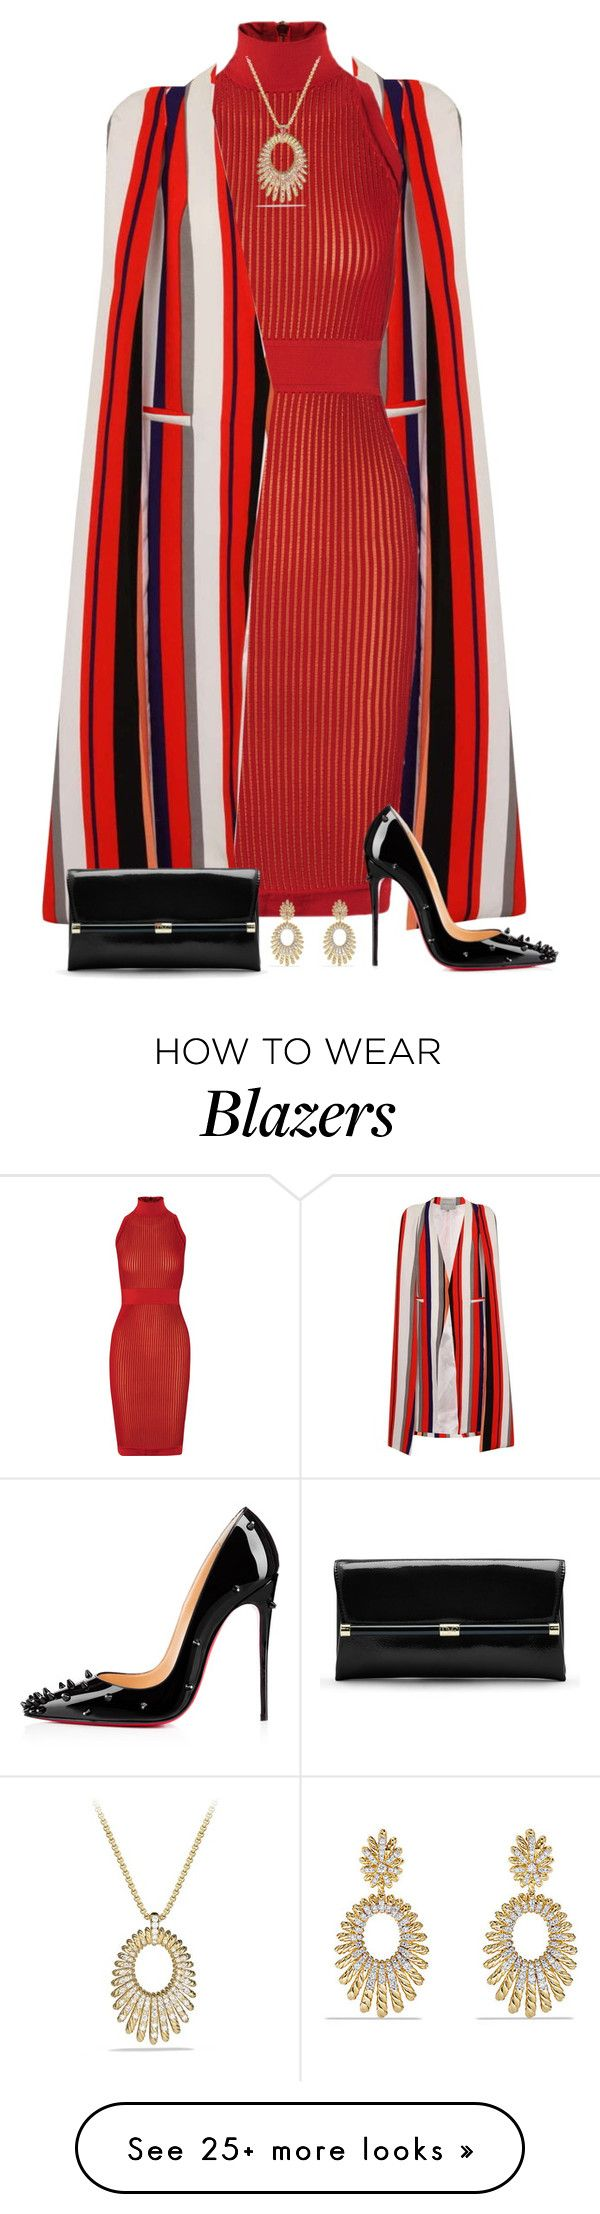 """Untitled #2472"" by elia72 on Polyvore featuring moda, Topshop, Balmain, Christian Louboutin, Diane Von Furstenberg, David Yurman, women's clothing, women, female e woman"